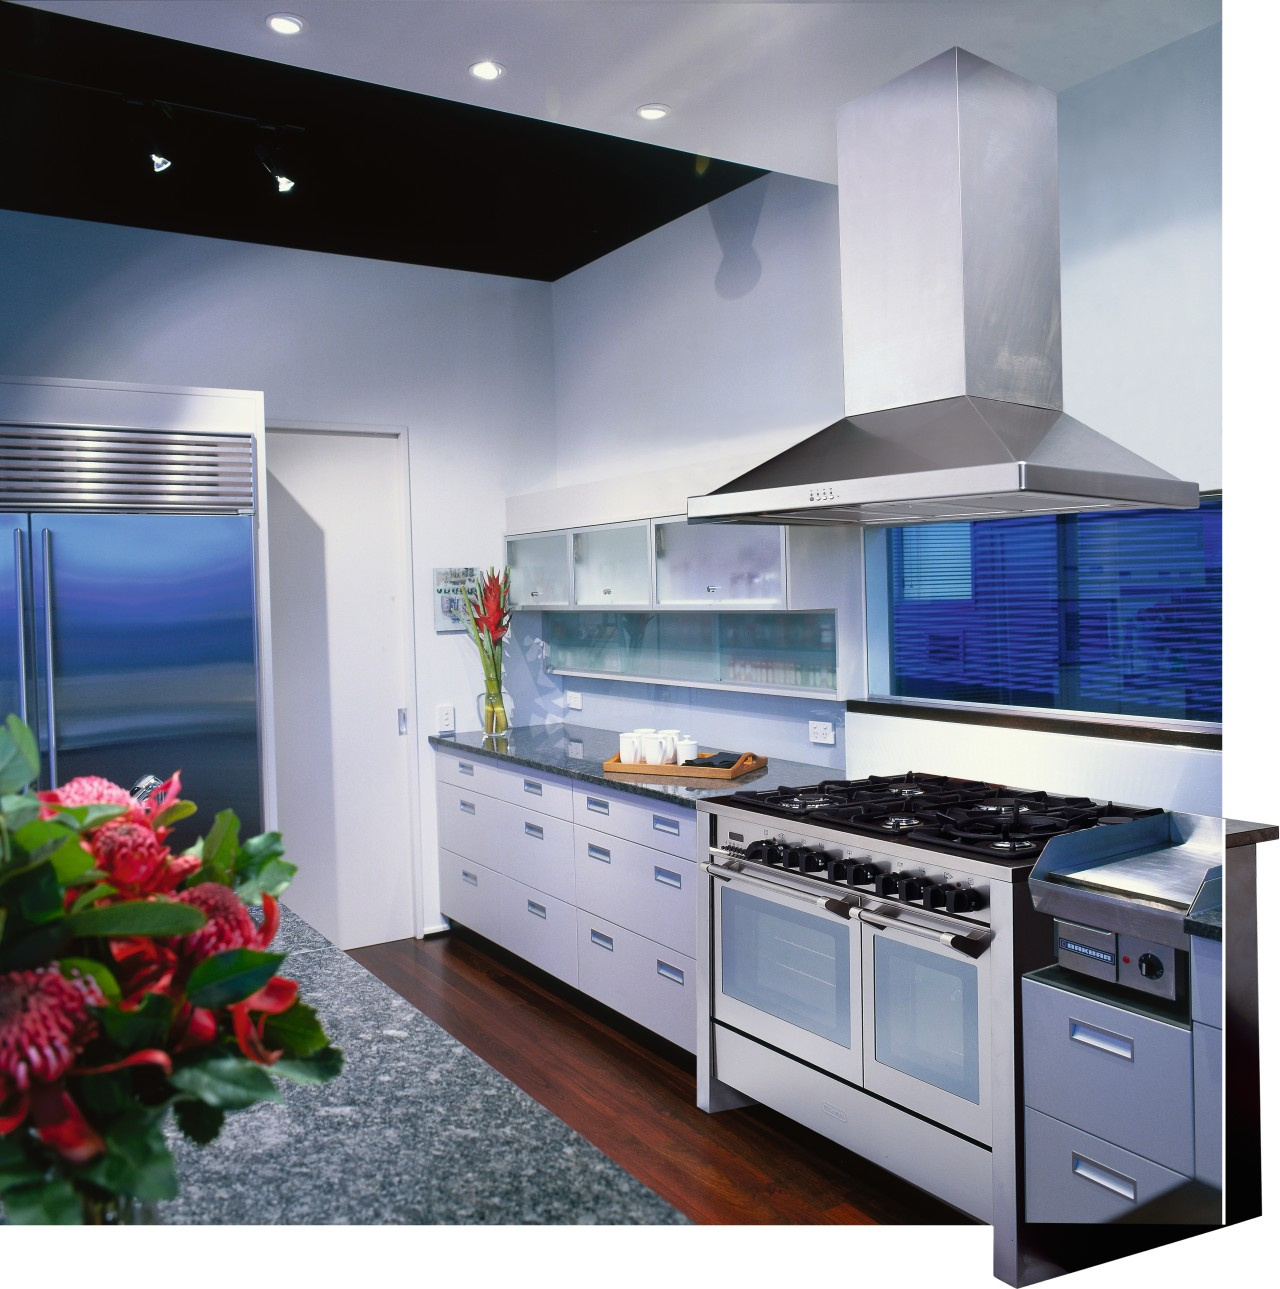 view of the kitchen area showing the five countertop, home appliance, interior design, kitchen, kitchen appliance, kitchen stove, major appliance, gray